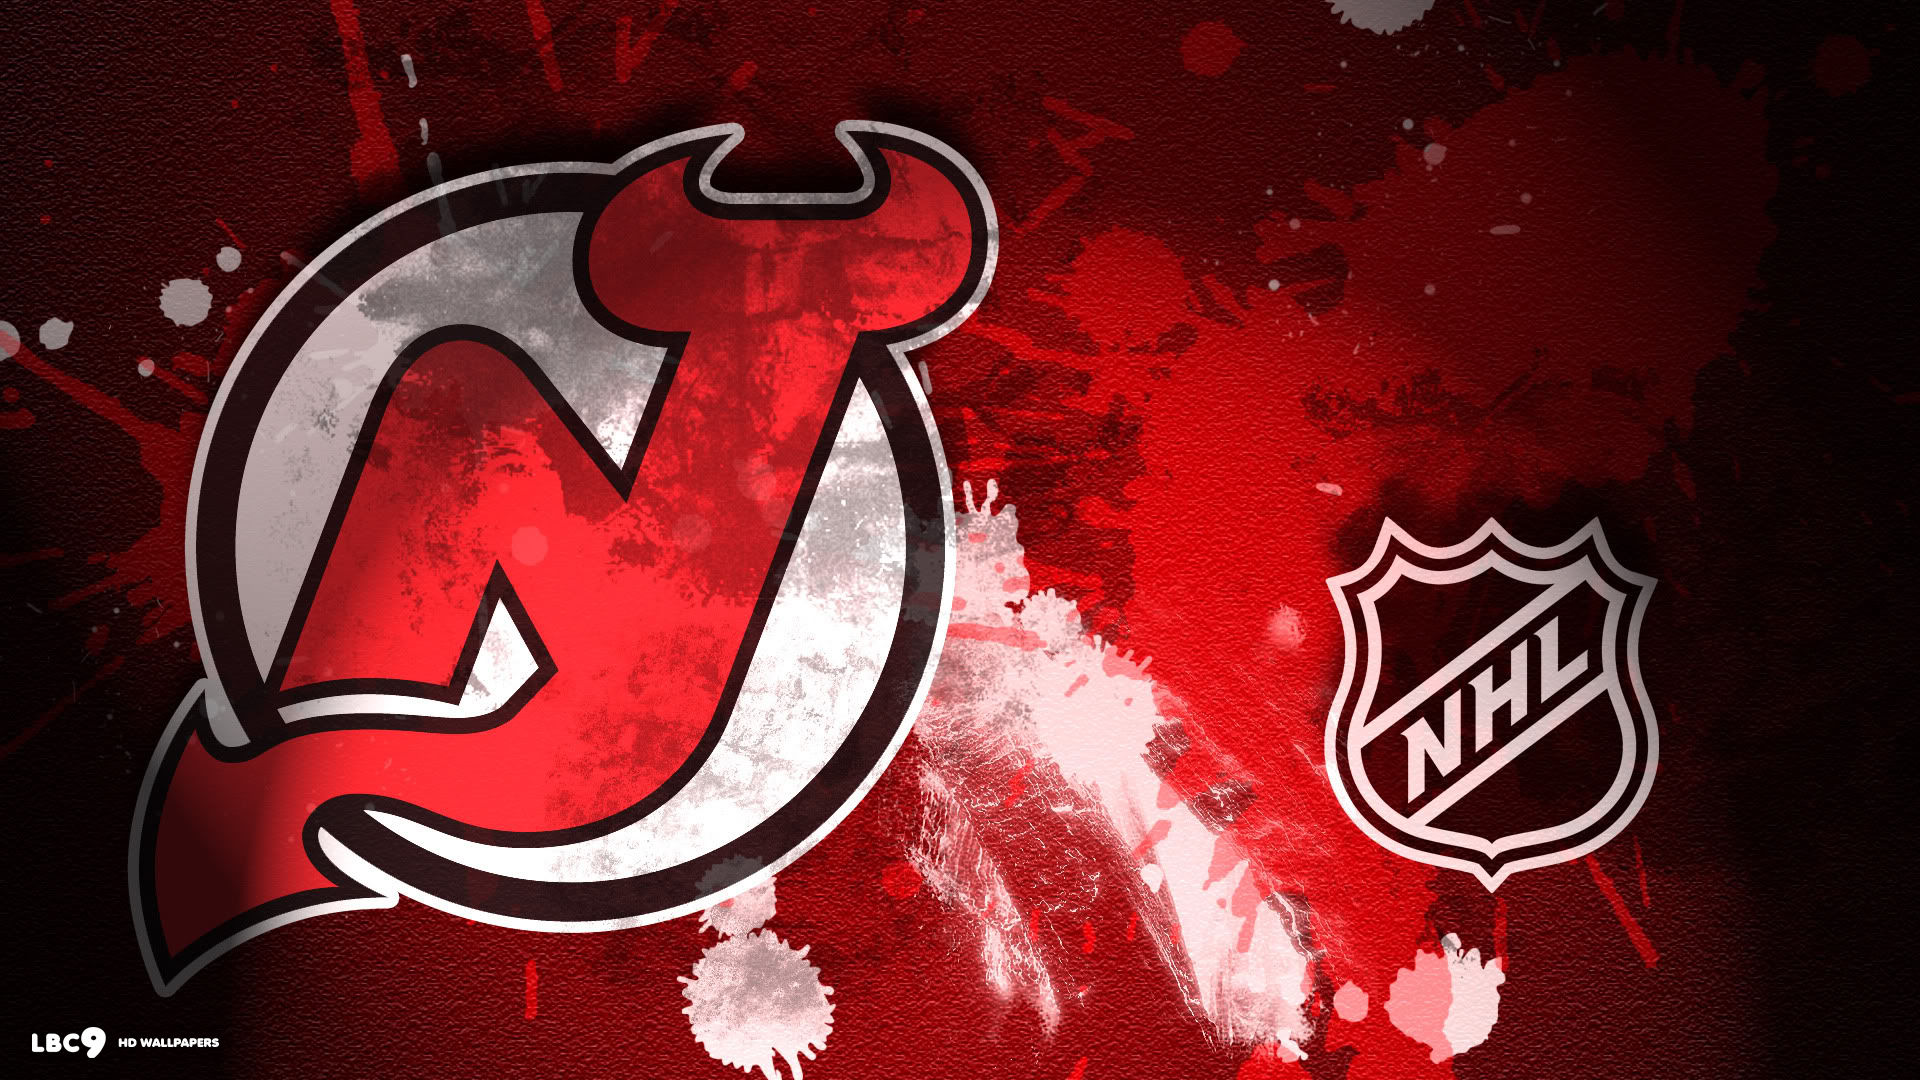 More New Jersey Devils wallpapers New Jersey Devils wallpapers 1920x1080